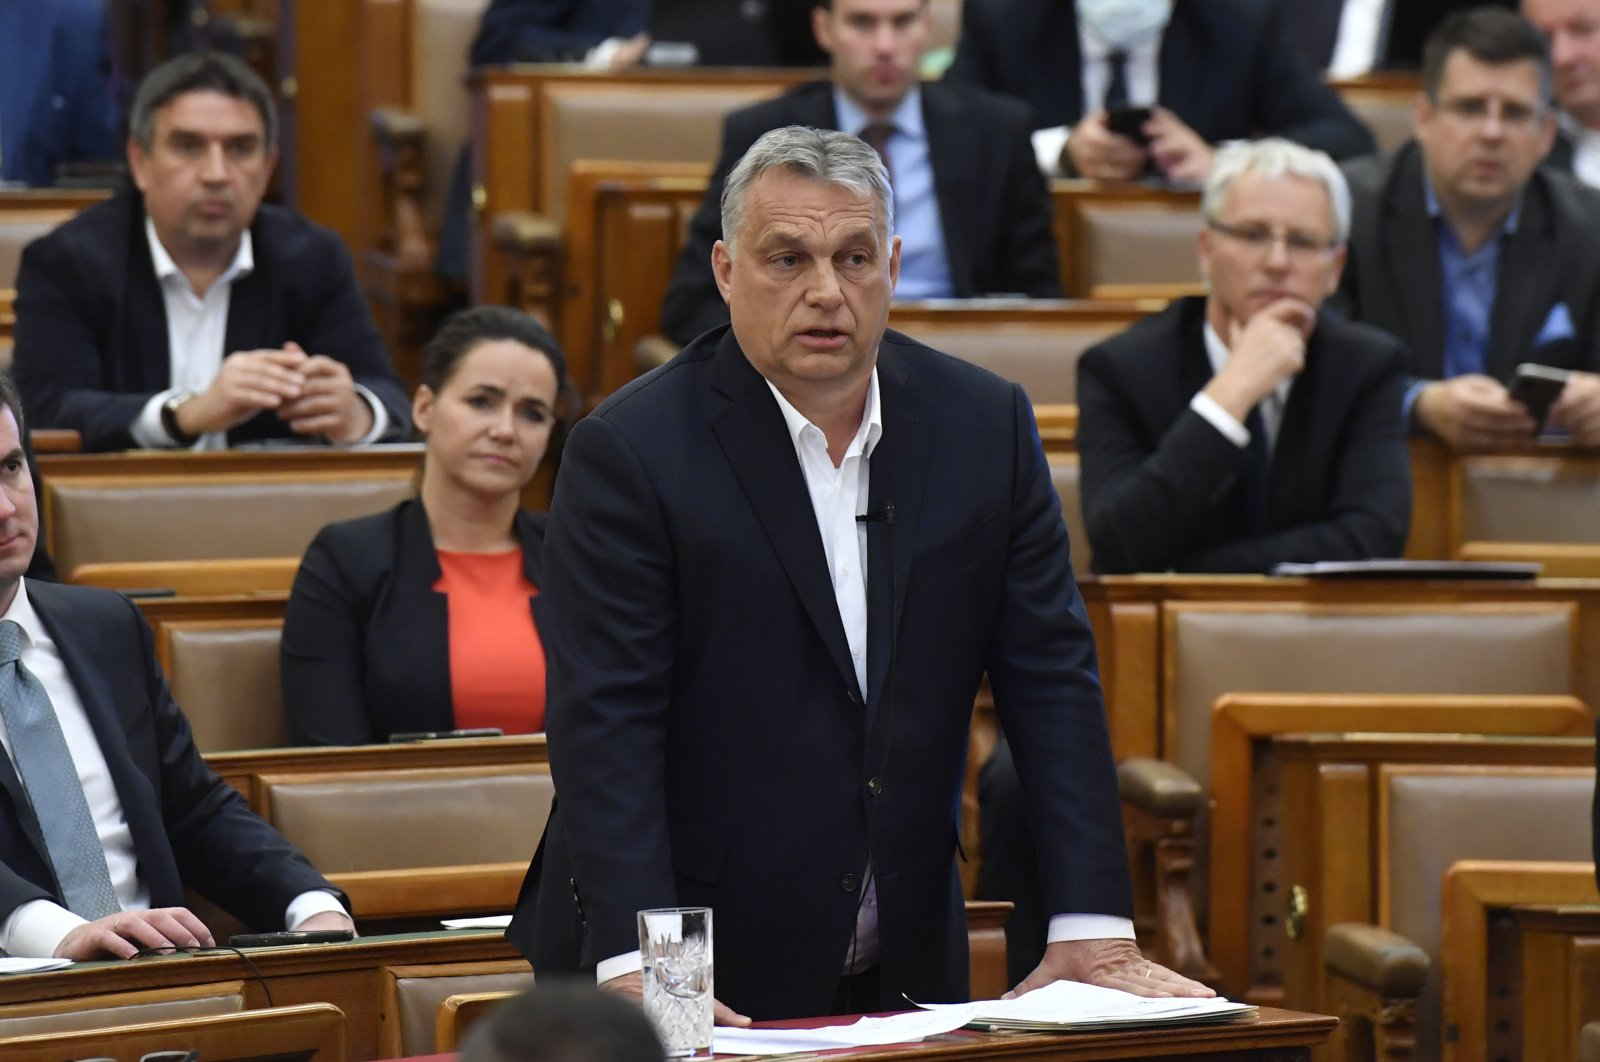 Hungarian Prime Minister Viktor Orban replies to an oppositional MP during a question and answer session of the Parliament in Budapest, Hungary, Budapest, Hungary, Monday, March 30, 2020. (AP Photo)